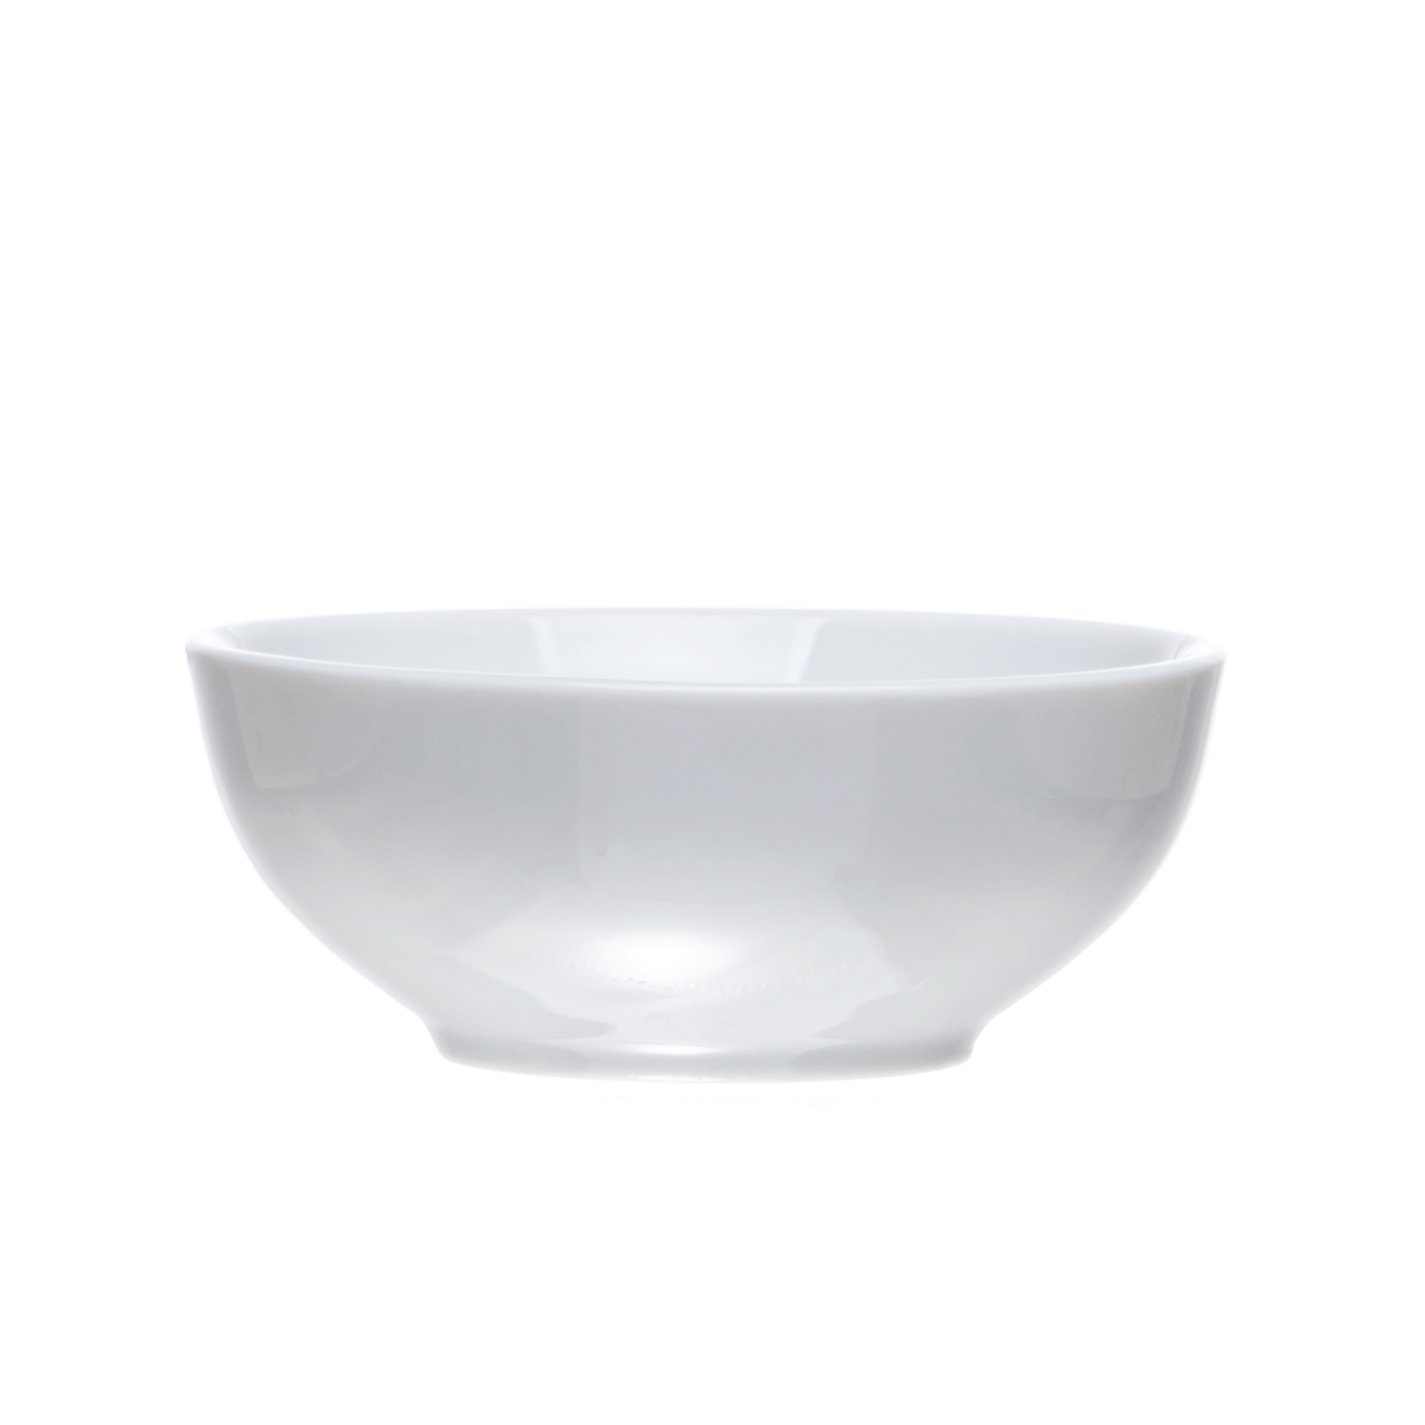 Soy Dipping Bowls - Sauce Dishes Set, 2.7 Oz., White Porcelain, Restaurant&Hotel Quality (12)